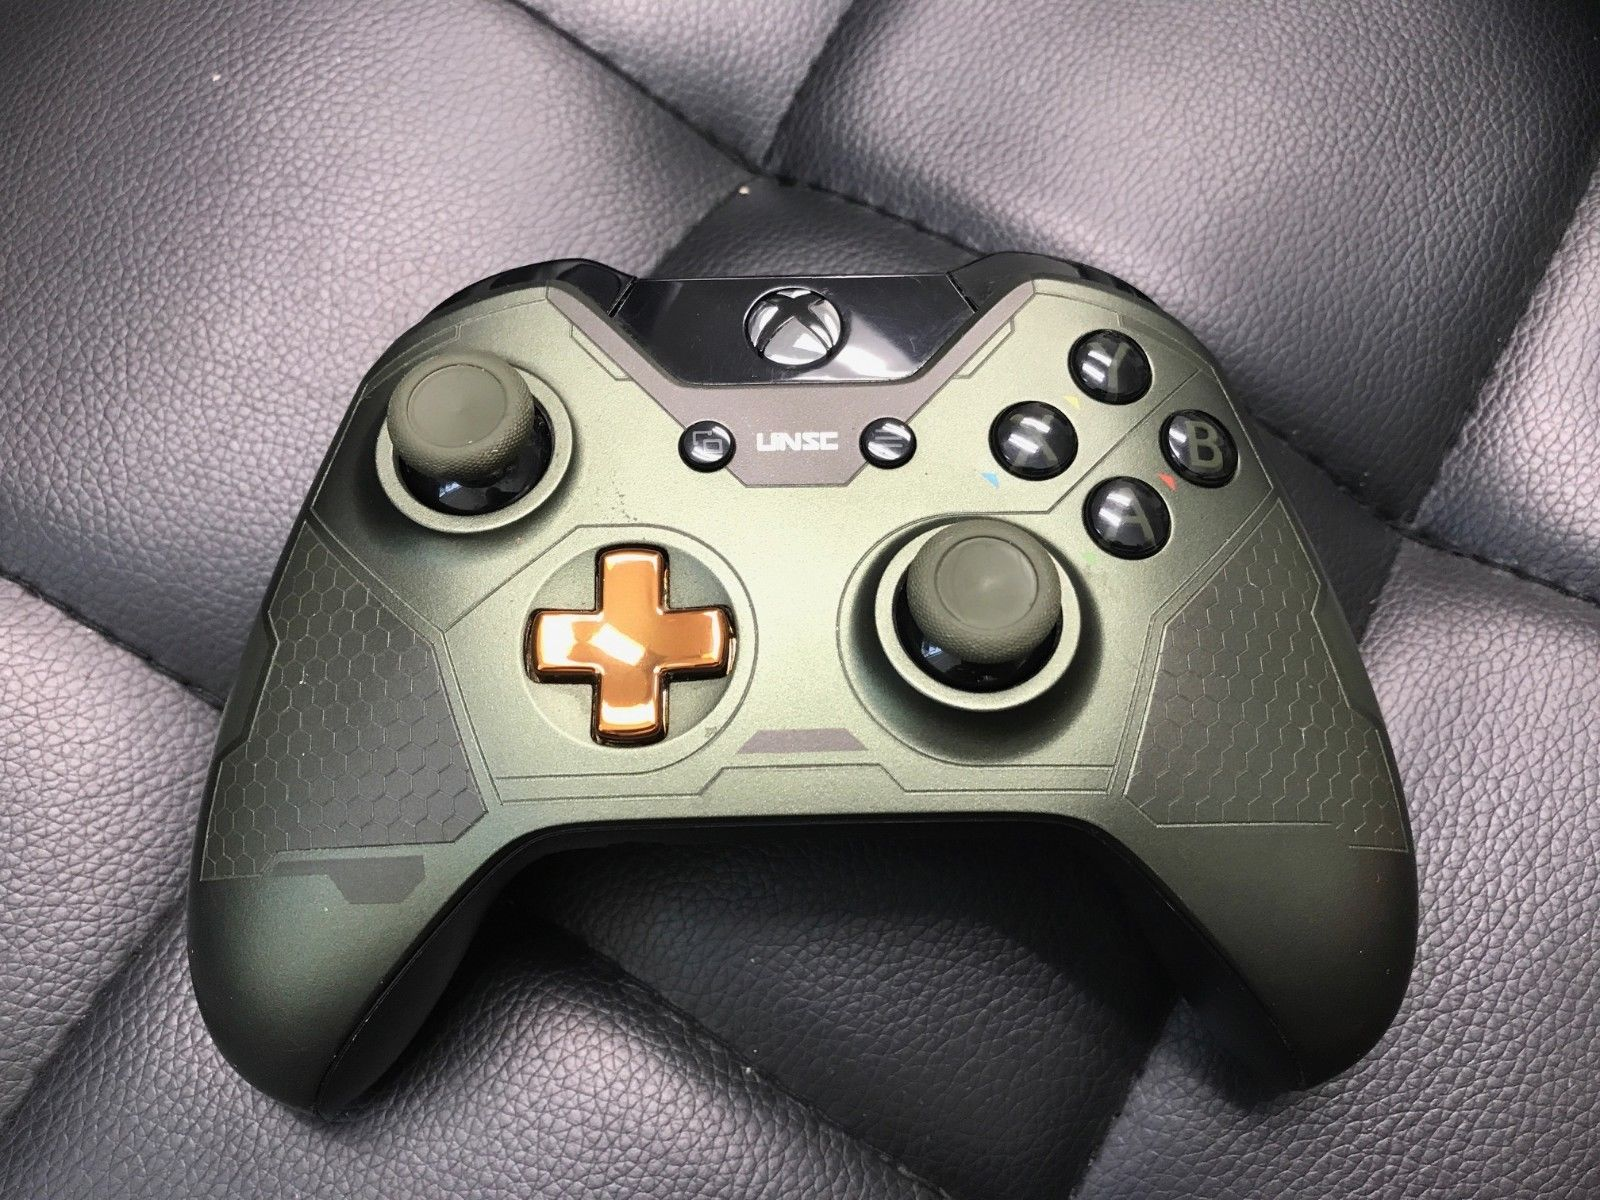 Details About Official Microsoft Xbox One Halo 5 Guardians Master Chief Wireless Controller